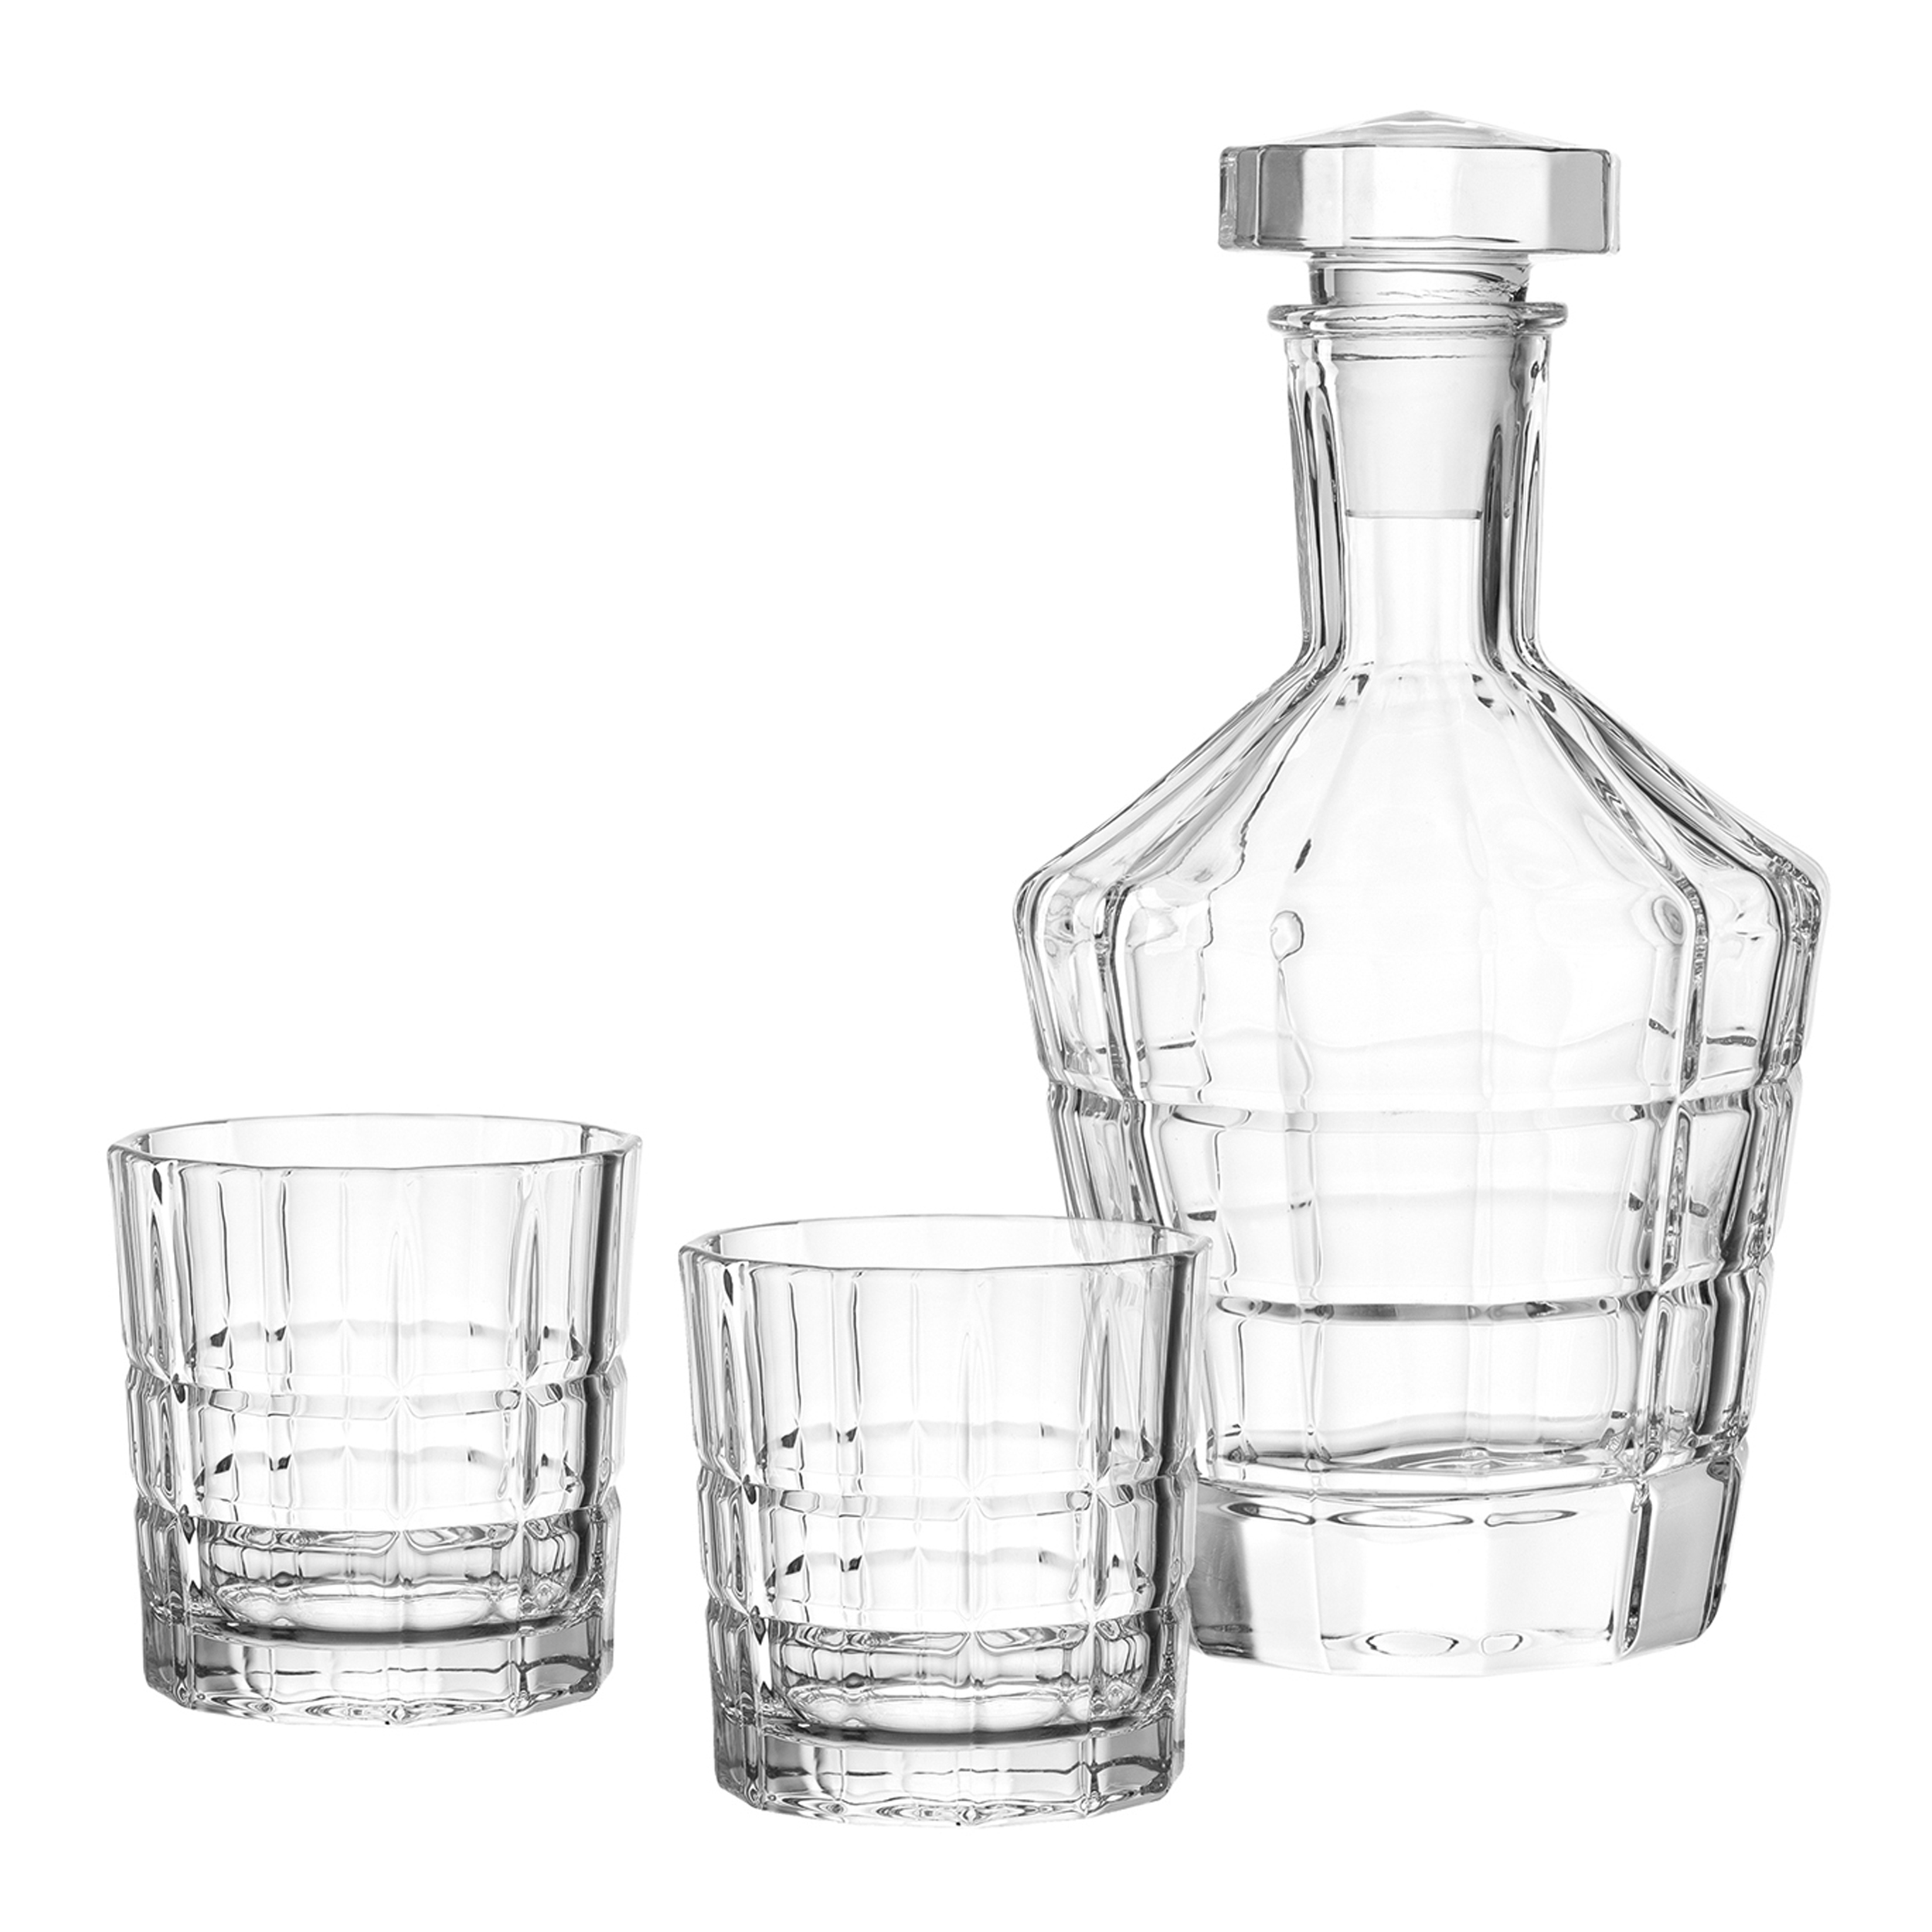 Whiskey Set Leonardo Spiritii Whiskey Set 3 Pieces Carafe Tumbler Glass 22765 At About Tea De Shop